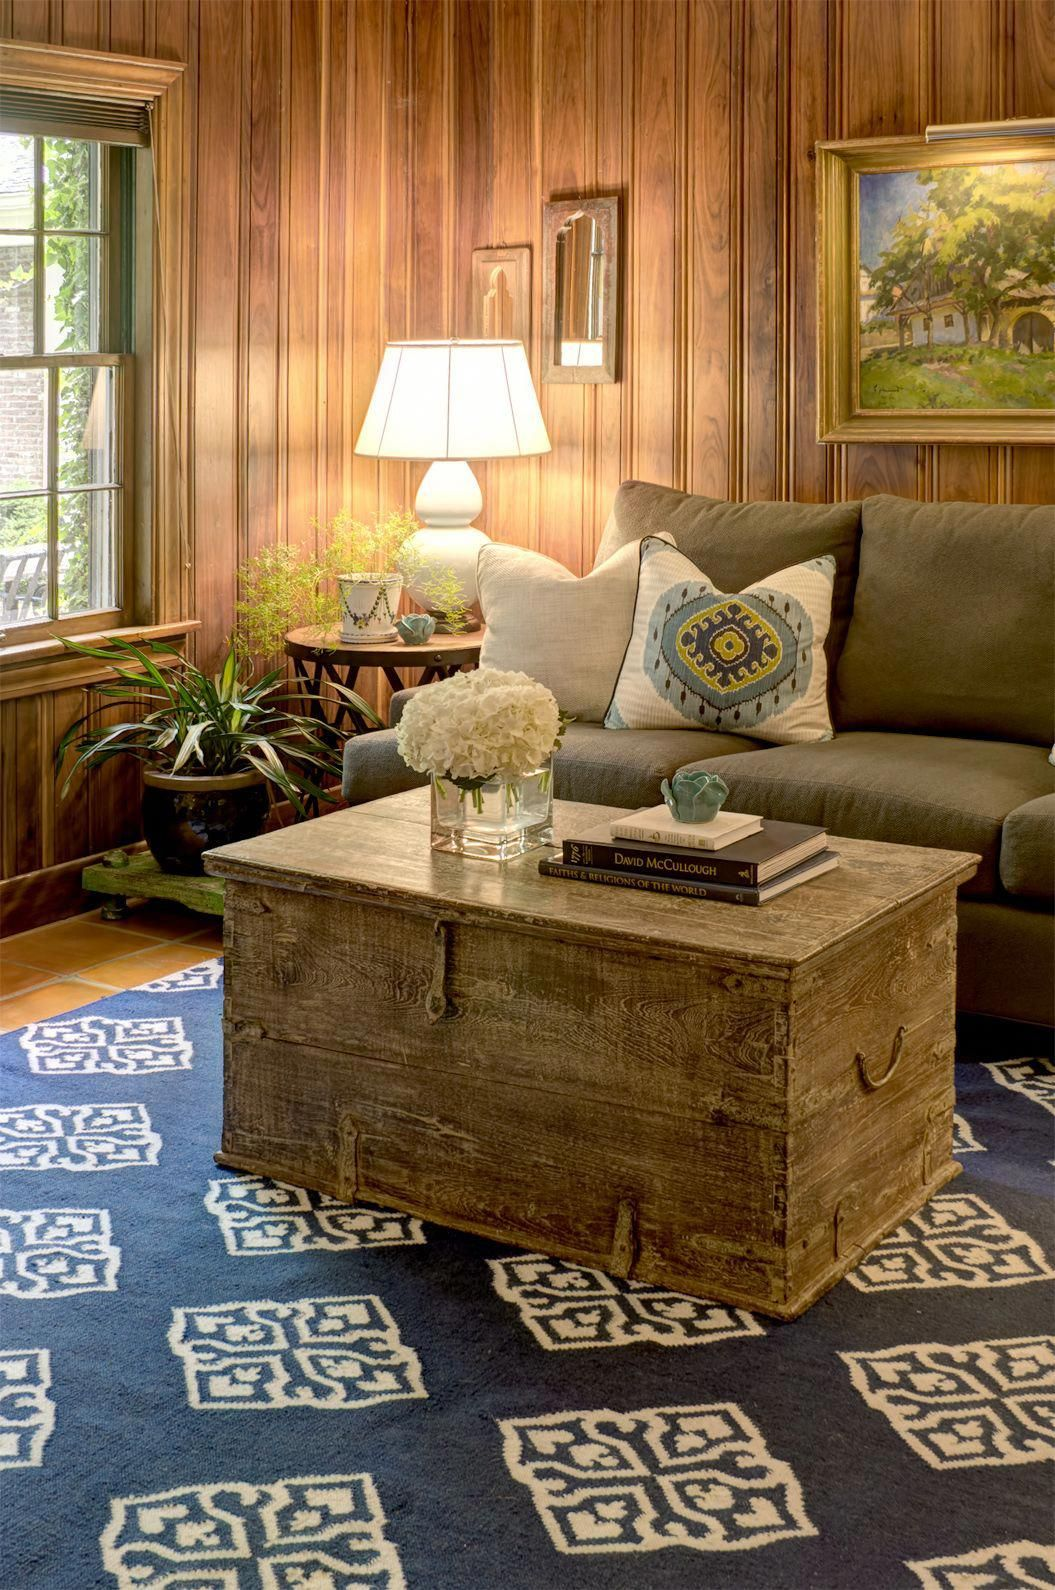 Wood Paneled Room Design: An Old Trunk Anchors This Setting Within A Gorgeous Wood